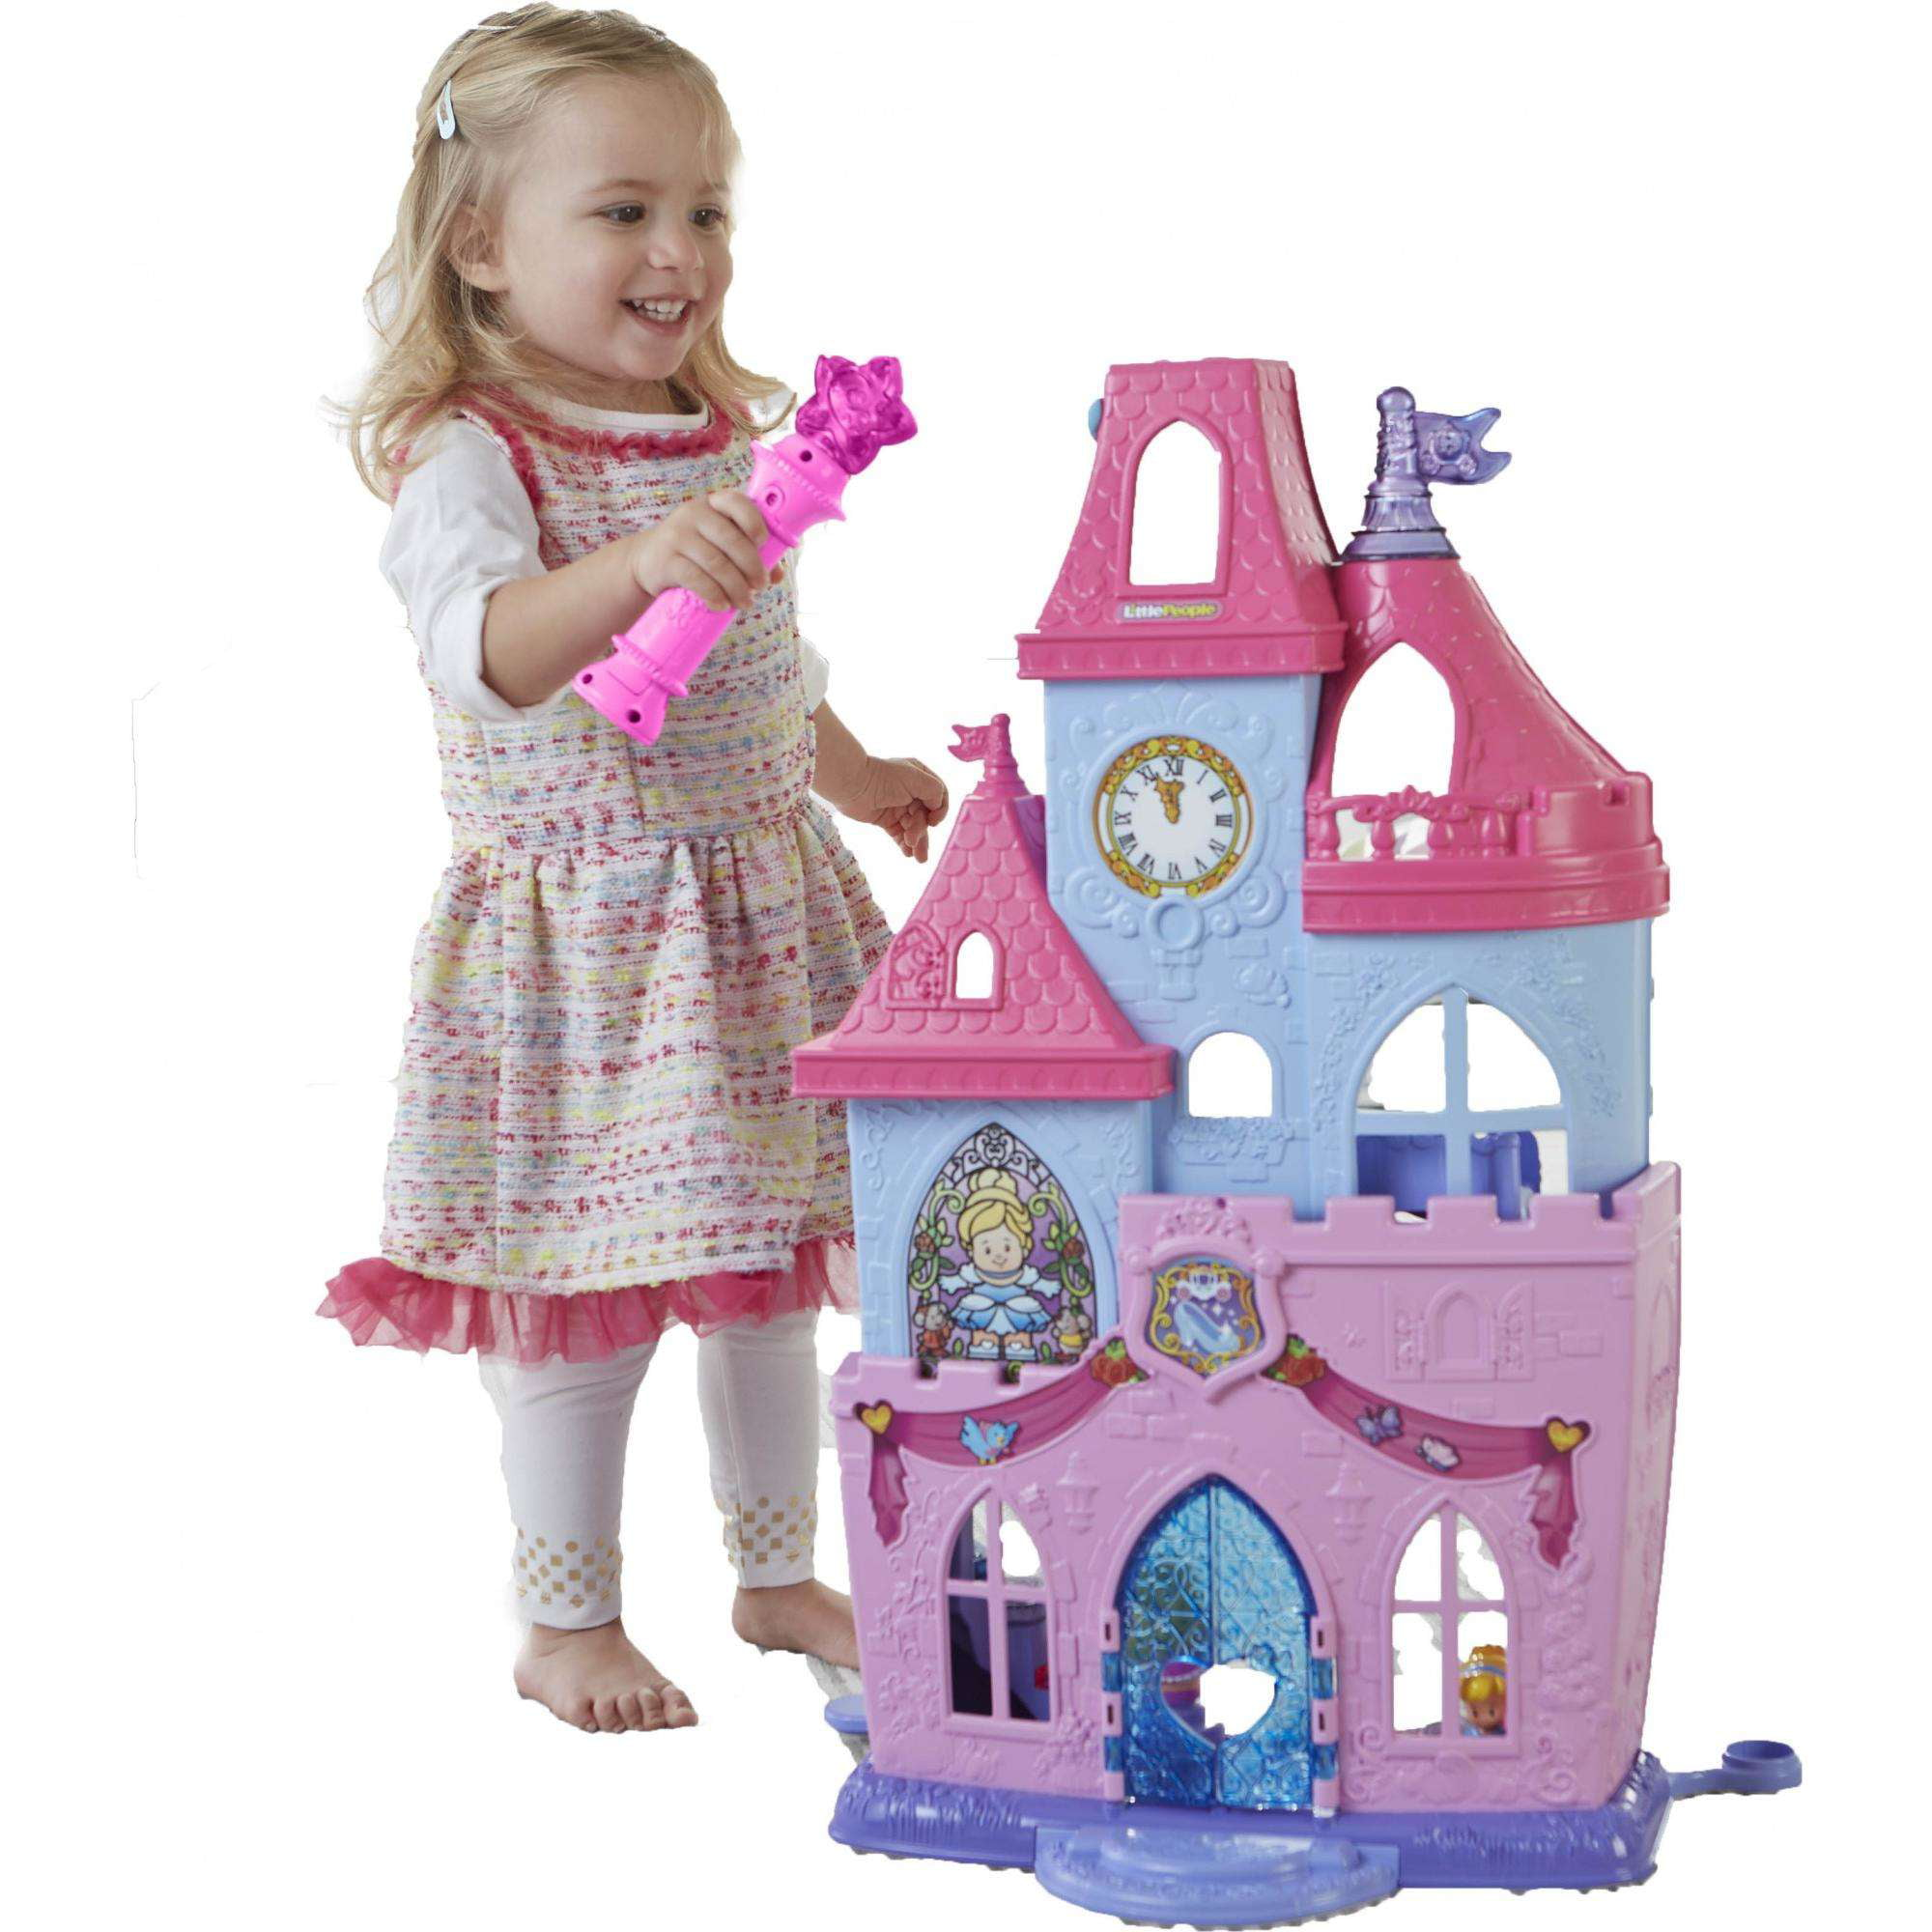 Disney Princess Magical Wand Palace By Little People by Little People